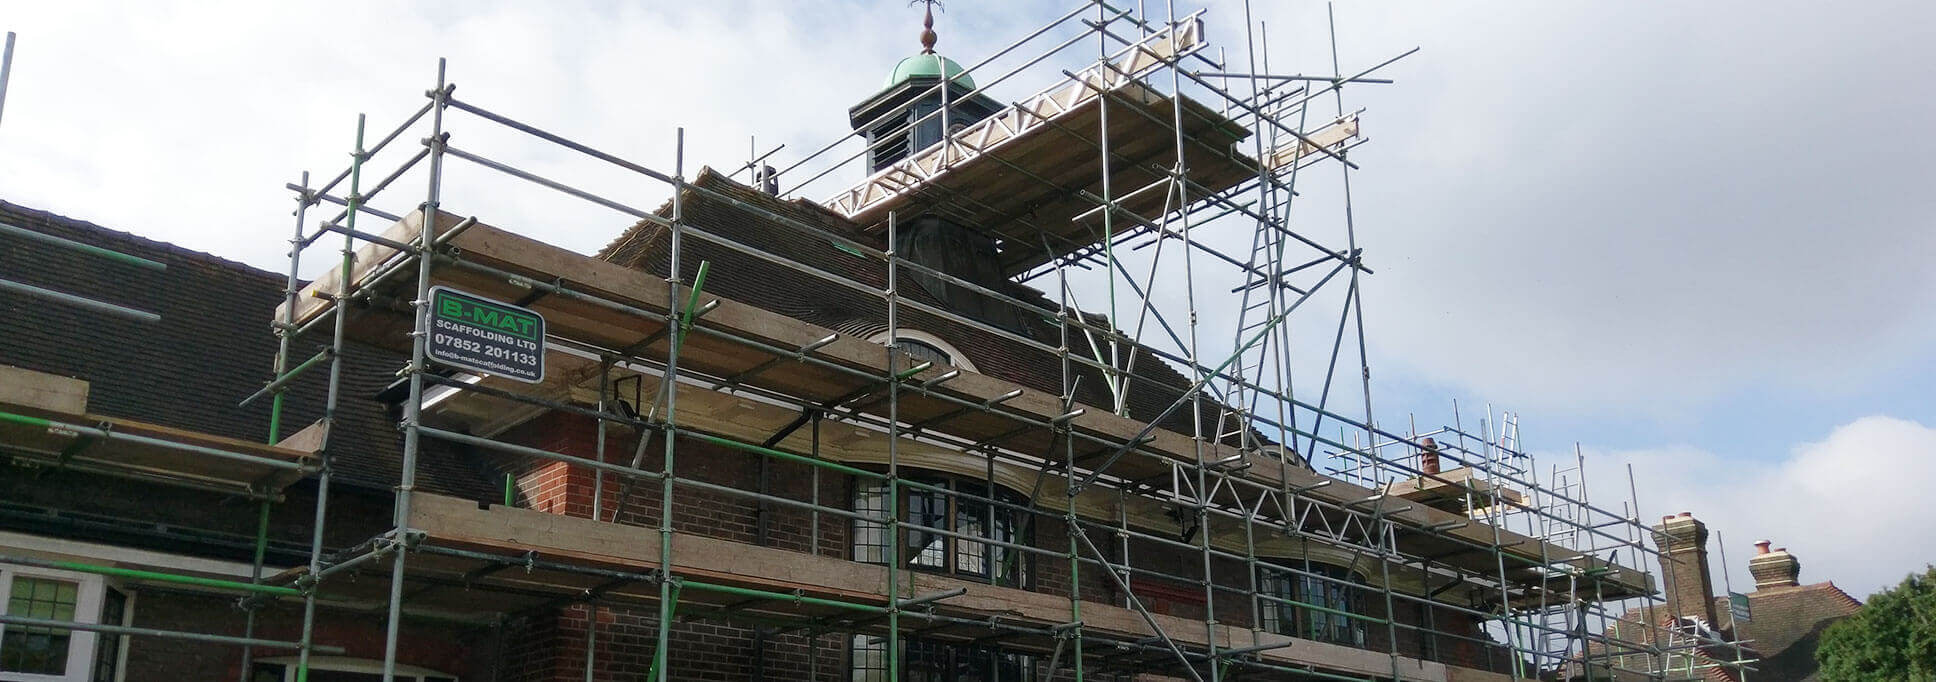 Scaffolding company London